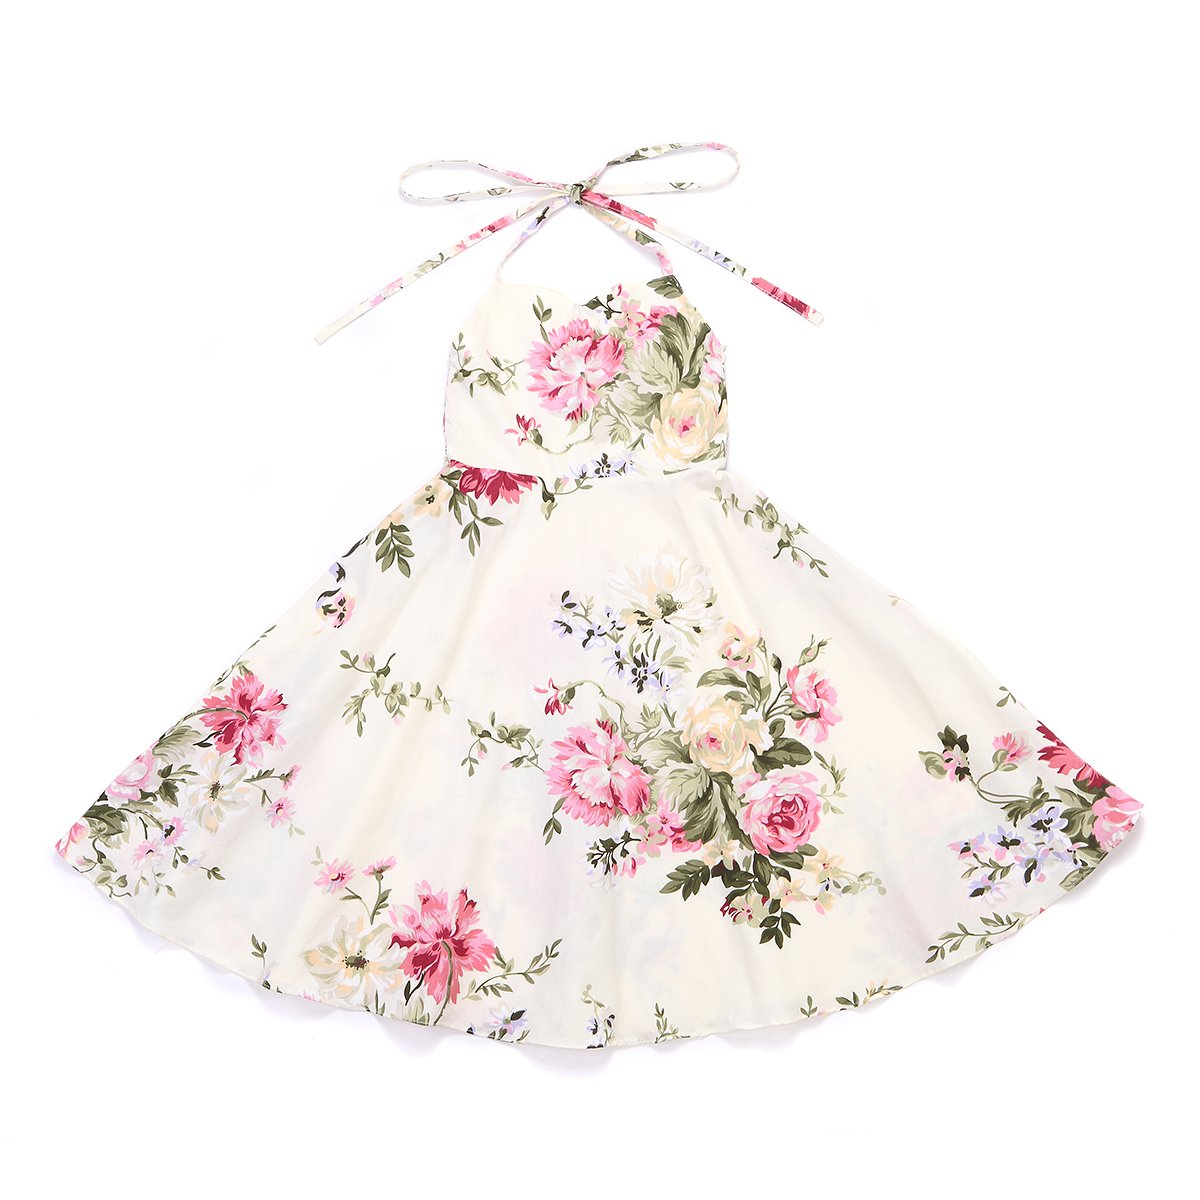 Flofallzique Flower Girl Dress for Wedding Summer Baby Girls Clothes Toddler Dress